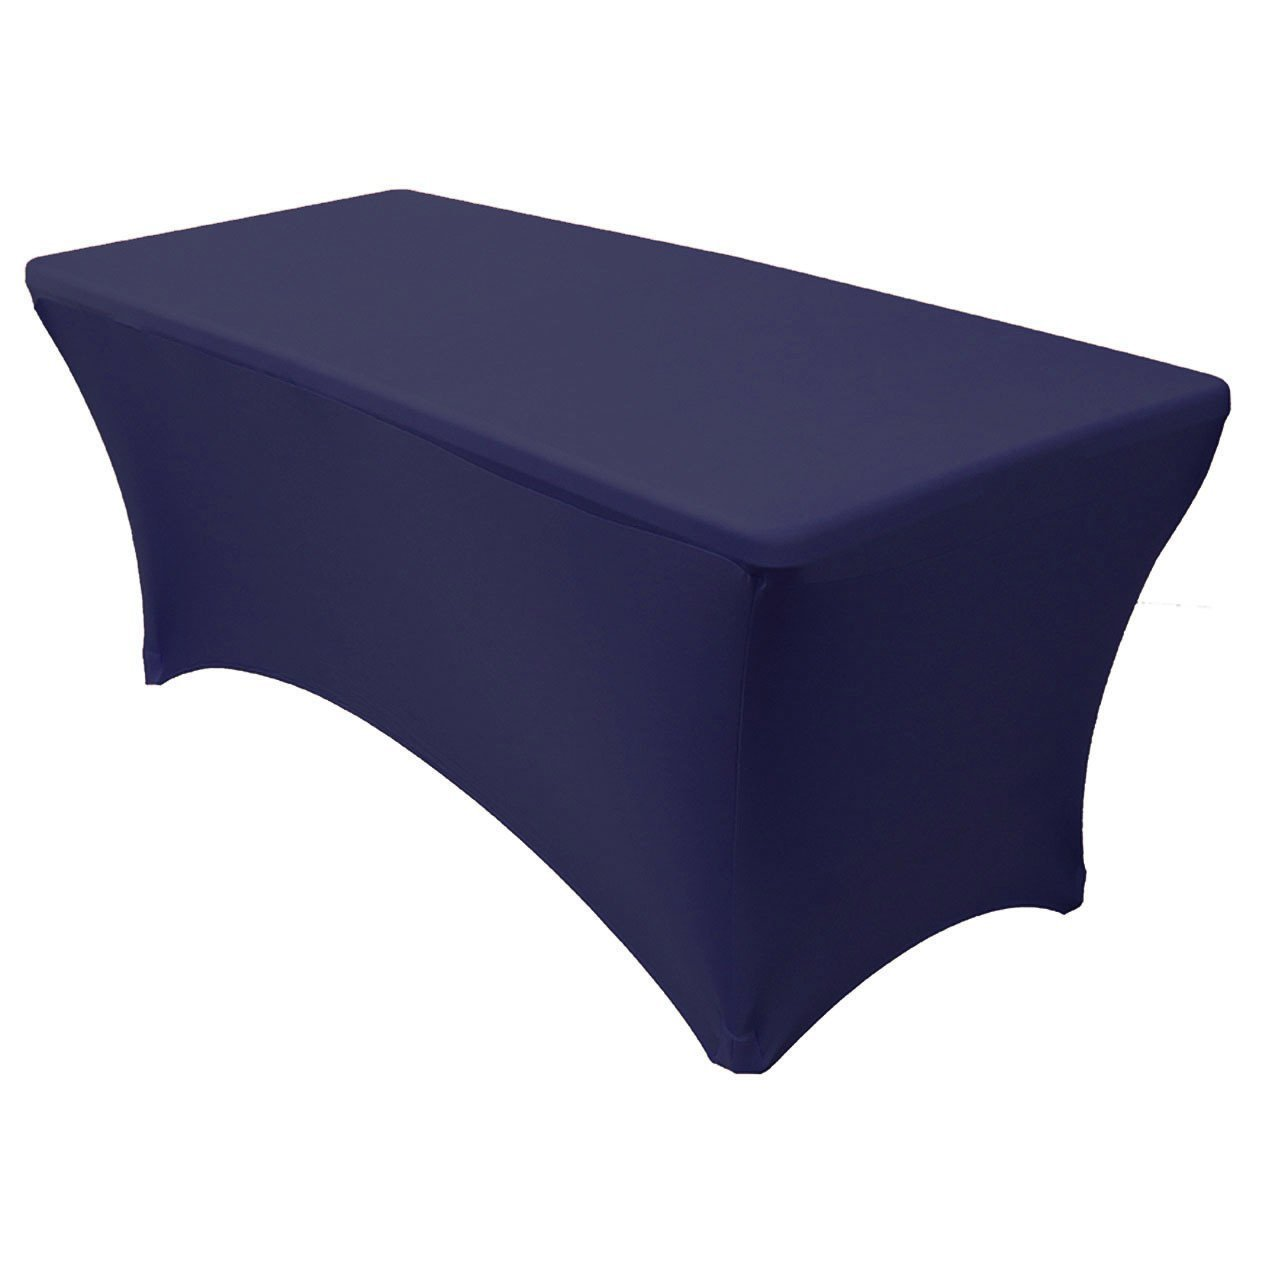 6' ft Spandex Fitted Stretch Tablecloth Rectangular Table Cover Wedding Banquet Party by GW Home (Navy Blue, 6' ft)